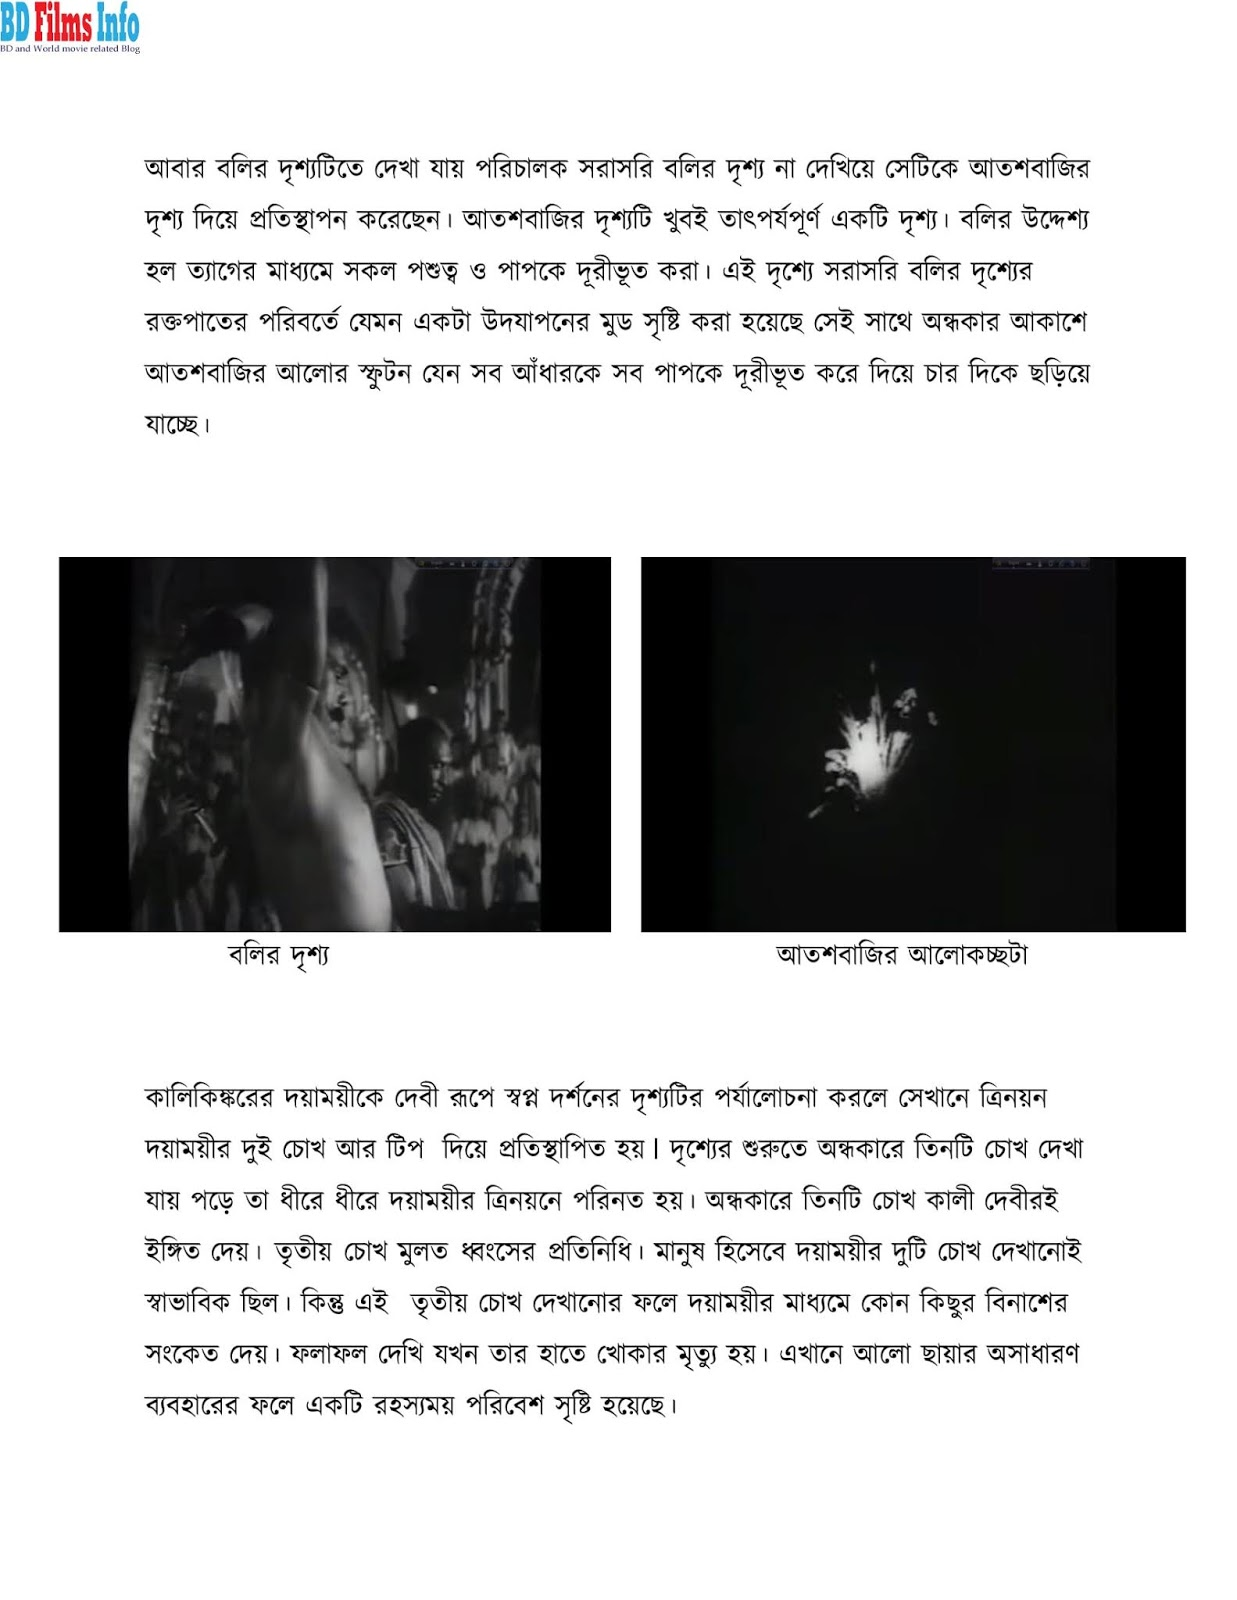 Devi 1960 Bengali Movie Review_BD Films Info Devi 1960 Bengali Movie Directed by Satyajit Ray_BD Films Info  'দেবী' সত্যজিৎ রায় কর্তৃক ১৯৬০ সালে নির্মিত হয়। সত্যজিৎ রায় পরিচালিত দেবী চলচ্চিত্রটির কাহিনী প্রভাত কুমার মুখোপাধ্যায় এর ''দেবী'' গল্প থেকে নেয়া। দেবী চলচ্চিত্রের স্ক্রিপ্ট রচনা করা হয়েছিল ১৮৯৯ সালে রচিত প্রভাত কুমার মুখোপাধ্যায়ের ছোটগল্প দেবী অনুসারে।    Devi 1960 Bengali Movie Review_BD Films Info  Devi 1960 Bengali Movie Review_BD Films Info  Devi 1960 Bengali Movie Review_BD Films Info  Devi 1960 Bengali Movie Review_BD Films Info  Devi 1960 Bengali Movie Review_BD Films Info  Devi 1960 Bengali Movie Review_BD Films Info  Devi 1960 Bengali Movie Review_BD Films Info  Devi 1960 Bengali Movie Review_BD Films Info  Devi 1960 Bengali Movie Review_BD Films Info  Devi 1960 Bengali Movie Review_BD Films Info  Devi 1960 Bengali Movie Review_BD Films Info  Devi 1960 Bengali Movie Review_BD Films Info  Devi 1960 Bengali Movie Review_BD Films Info  Devi 1960 Bengali Movie Review_BD Films Info  Devi 1960 Bengali Movie Review_BD Films Info  Devi 1960 Bengali Movie Review_BD Films Info  Devi 1960 Bengali Movie Review_BD Films Info  Devi 1960 Bengali Movie Review_BD Films Info  Devi 1960 Bengali Movie Review_BD Films Info  Devi 1960 Bengali Movie Review_BD Films Info  Devi 1960 Bengali Movie Review_BD Films Info  Devi 1960 Bengali Movie Review_BD Films Info  Devi 1960 Bengali Movie Review_BD Films Info  Devi 1960 Bengali Movie Review_BD Films Info  Devi 1960 Bengali Movie Review_BD Films Info  Devi 1960 Bengali Movie Review_BD Films Info  Devi 1960 Bengali Movie Review_BD Films Info  Devi 1960 Bengali Movie Review_BD Films Info  Devi 1960 Bengali Movie Review_BD Films Info  Devi 1960 Bengali Movie Review_BD Films Info  Devi 1960 Bengali Movie Review_BD Films Info  Devi 1960 Bengali Movie Review_BD Films Info  Devi 1960 Bengali Movie Review_BD Films Info  Devi 1960 Bengali Movie Review_BD Films Info